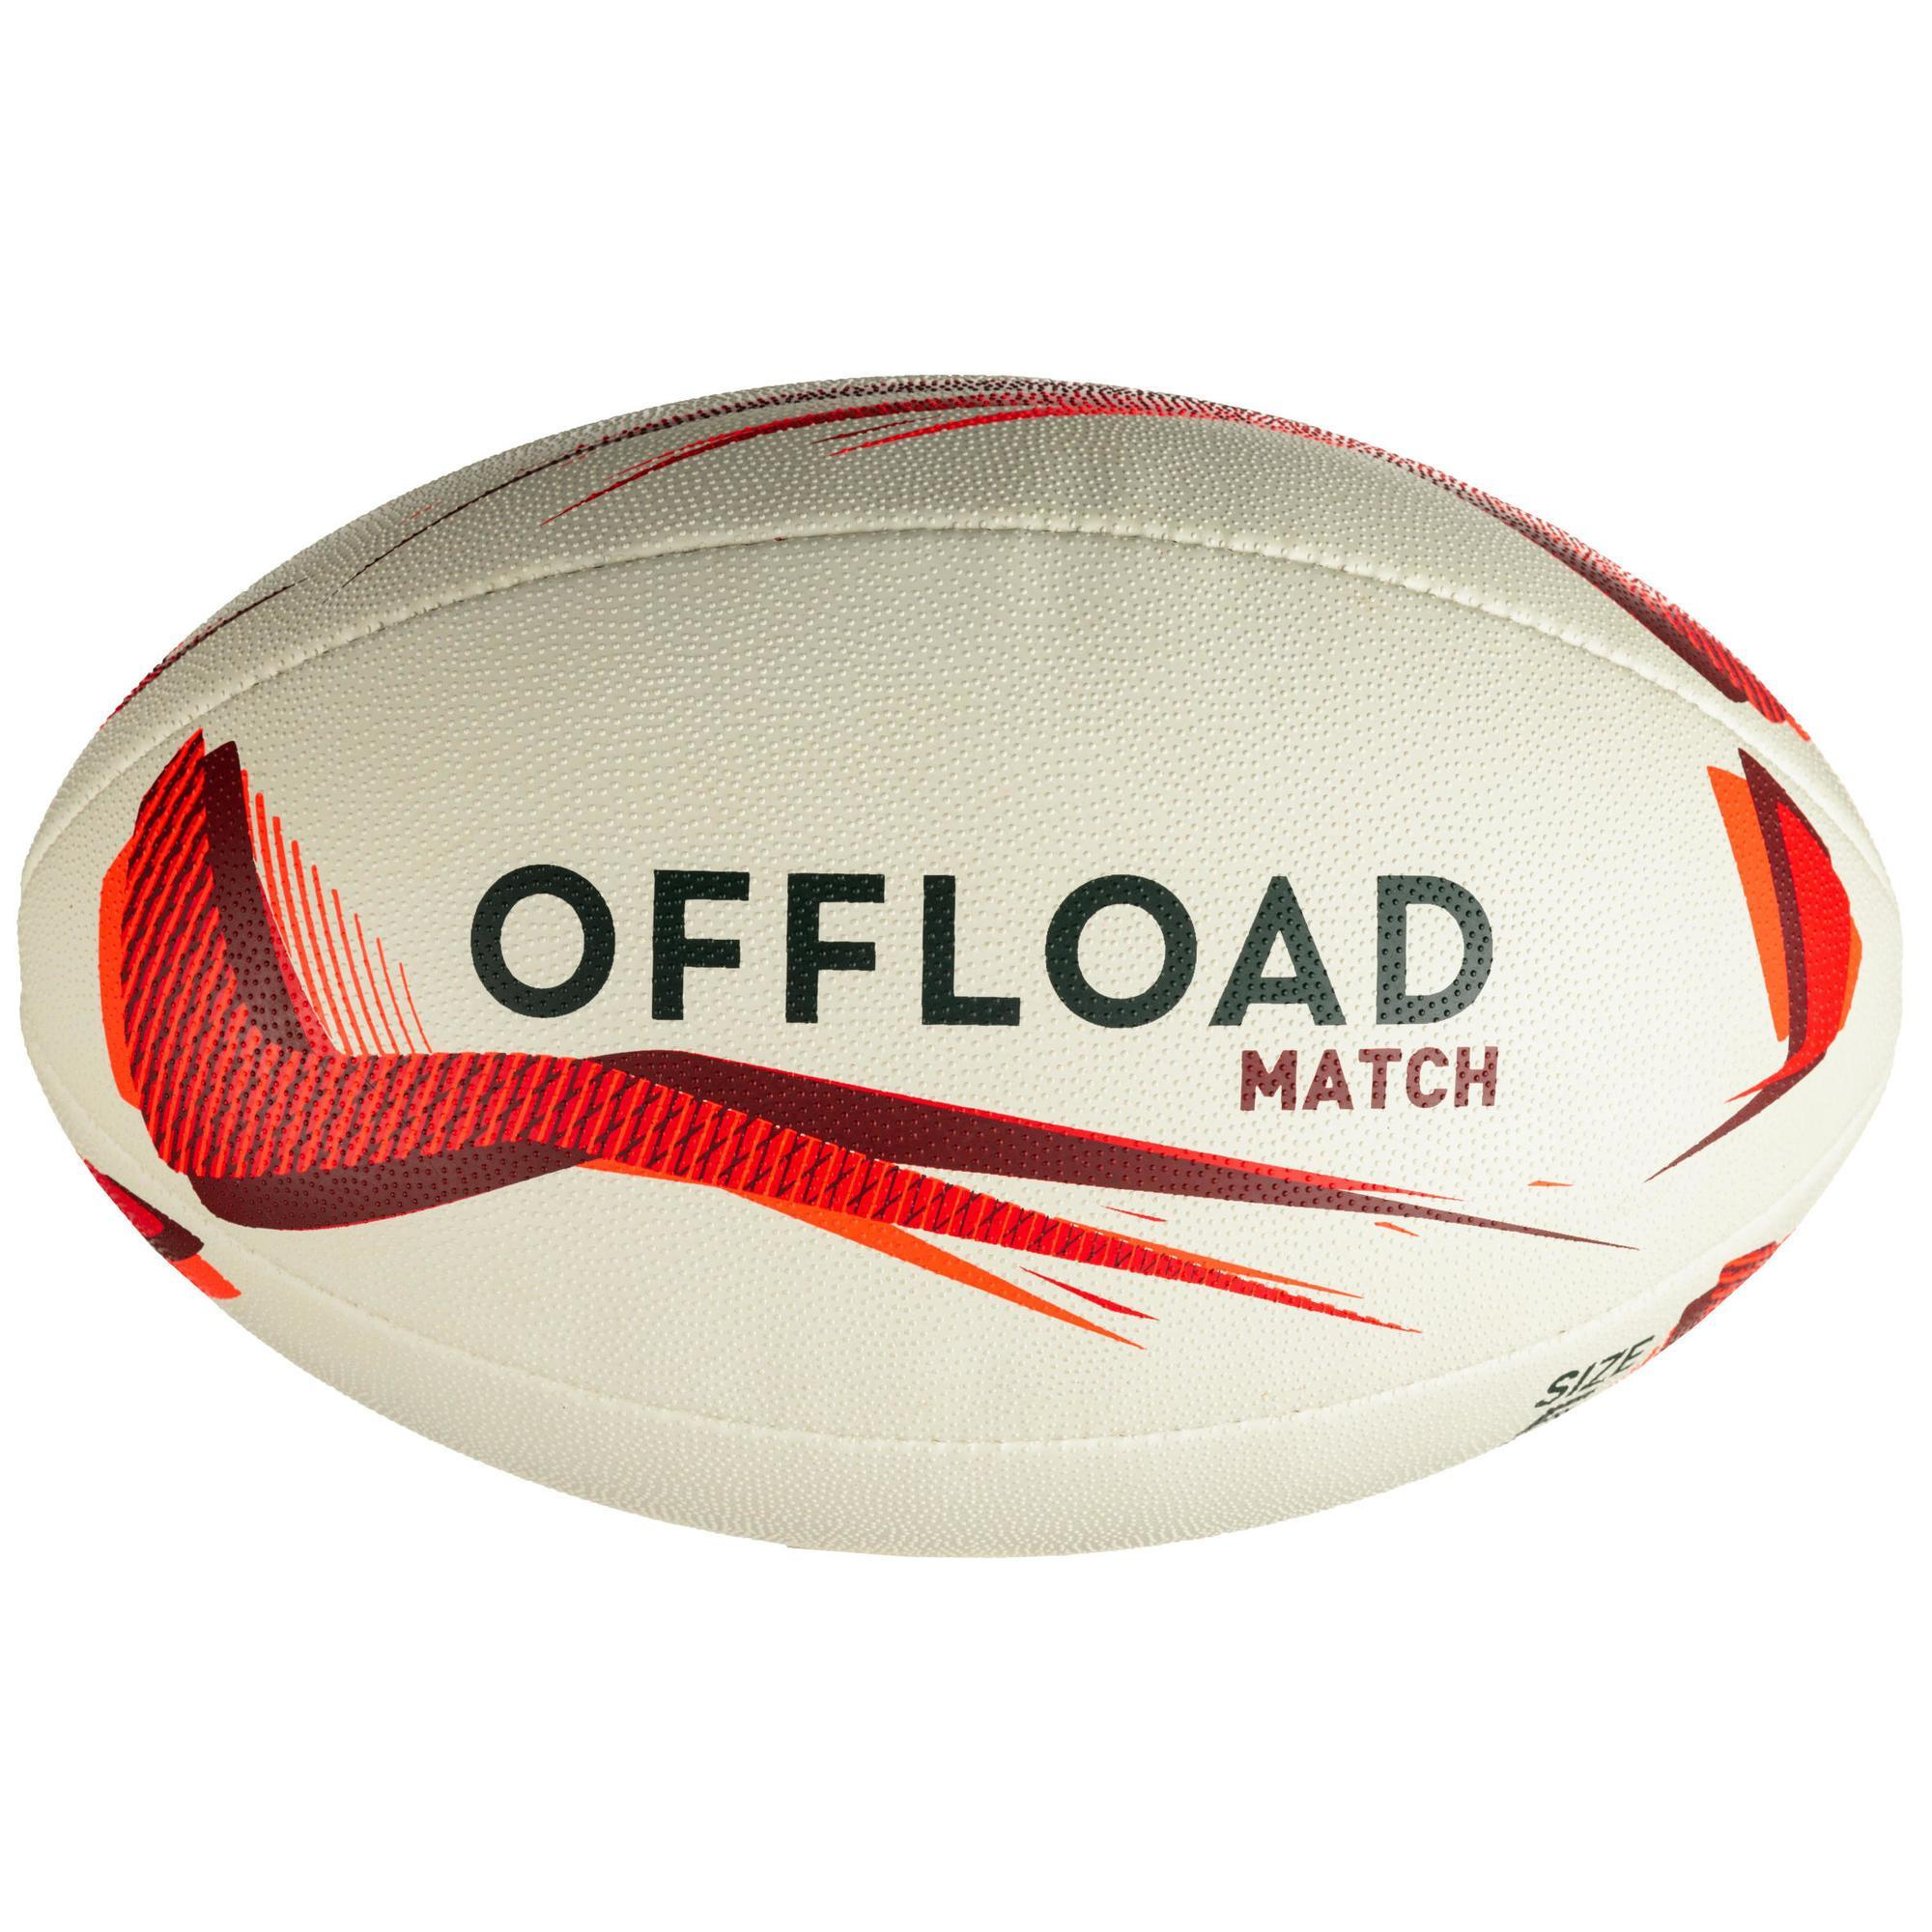 Offload Rugbybal R500 maat 5 rood